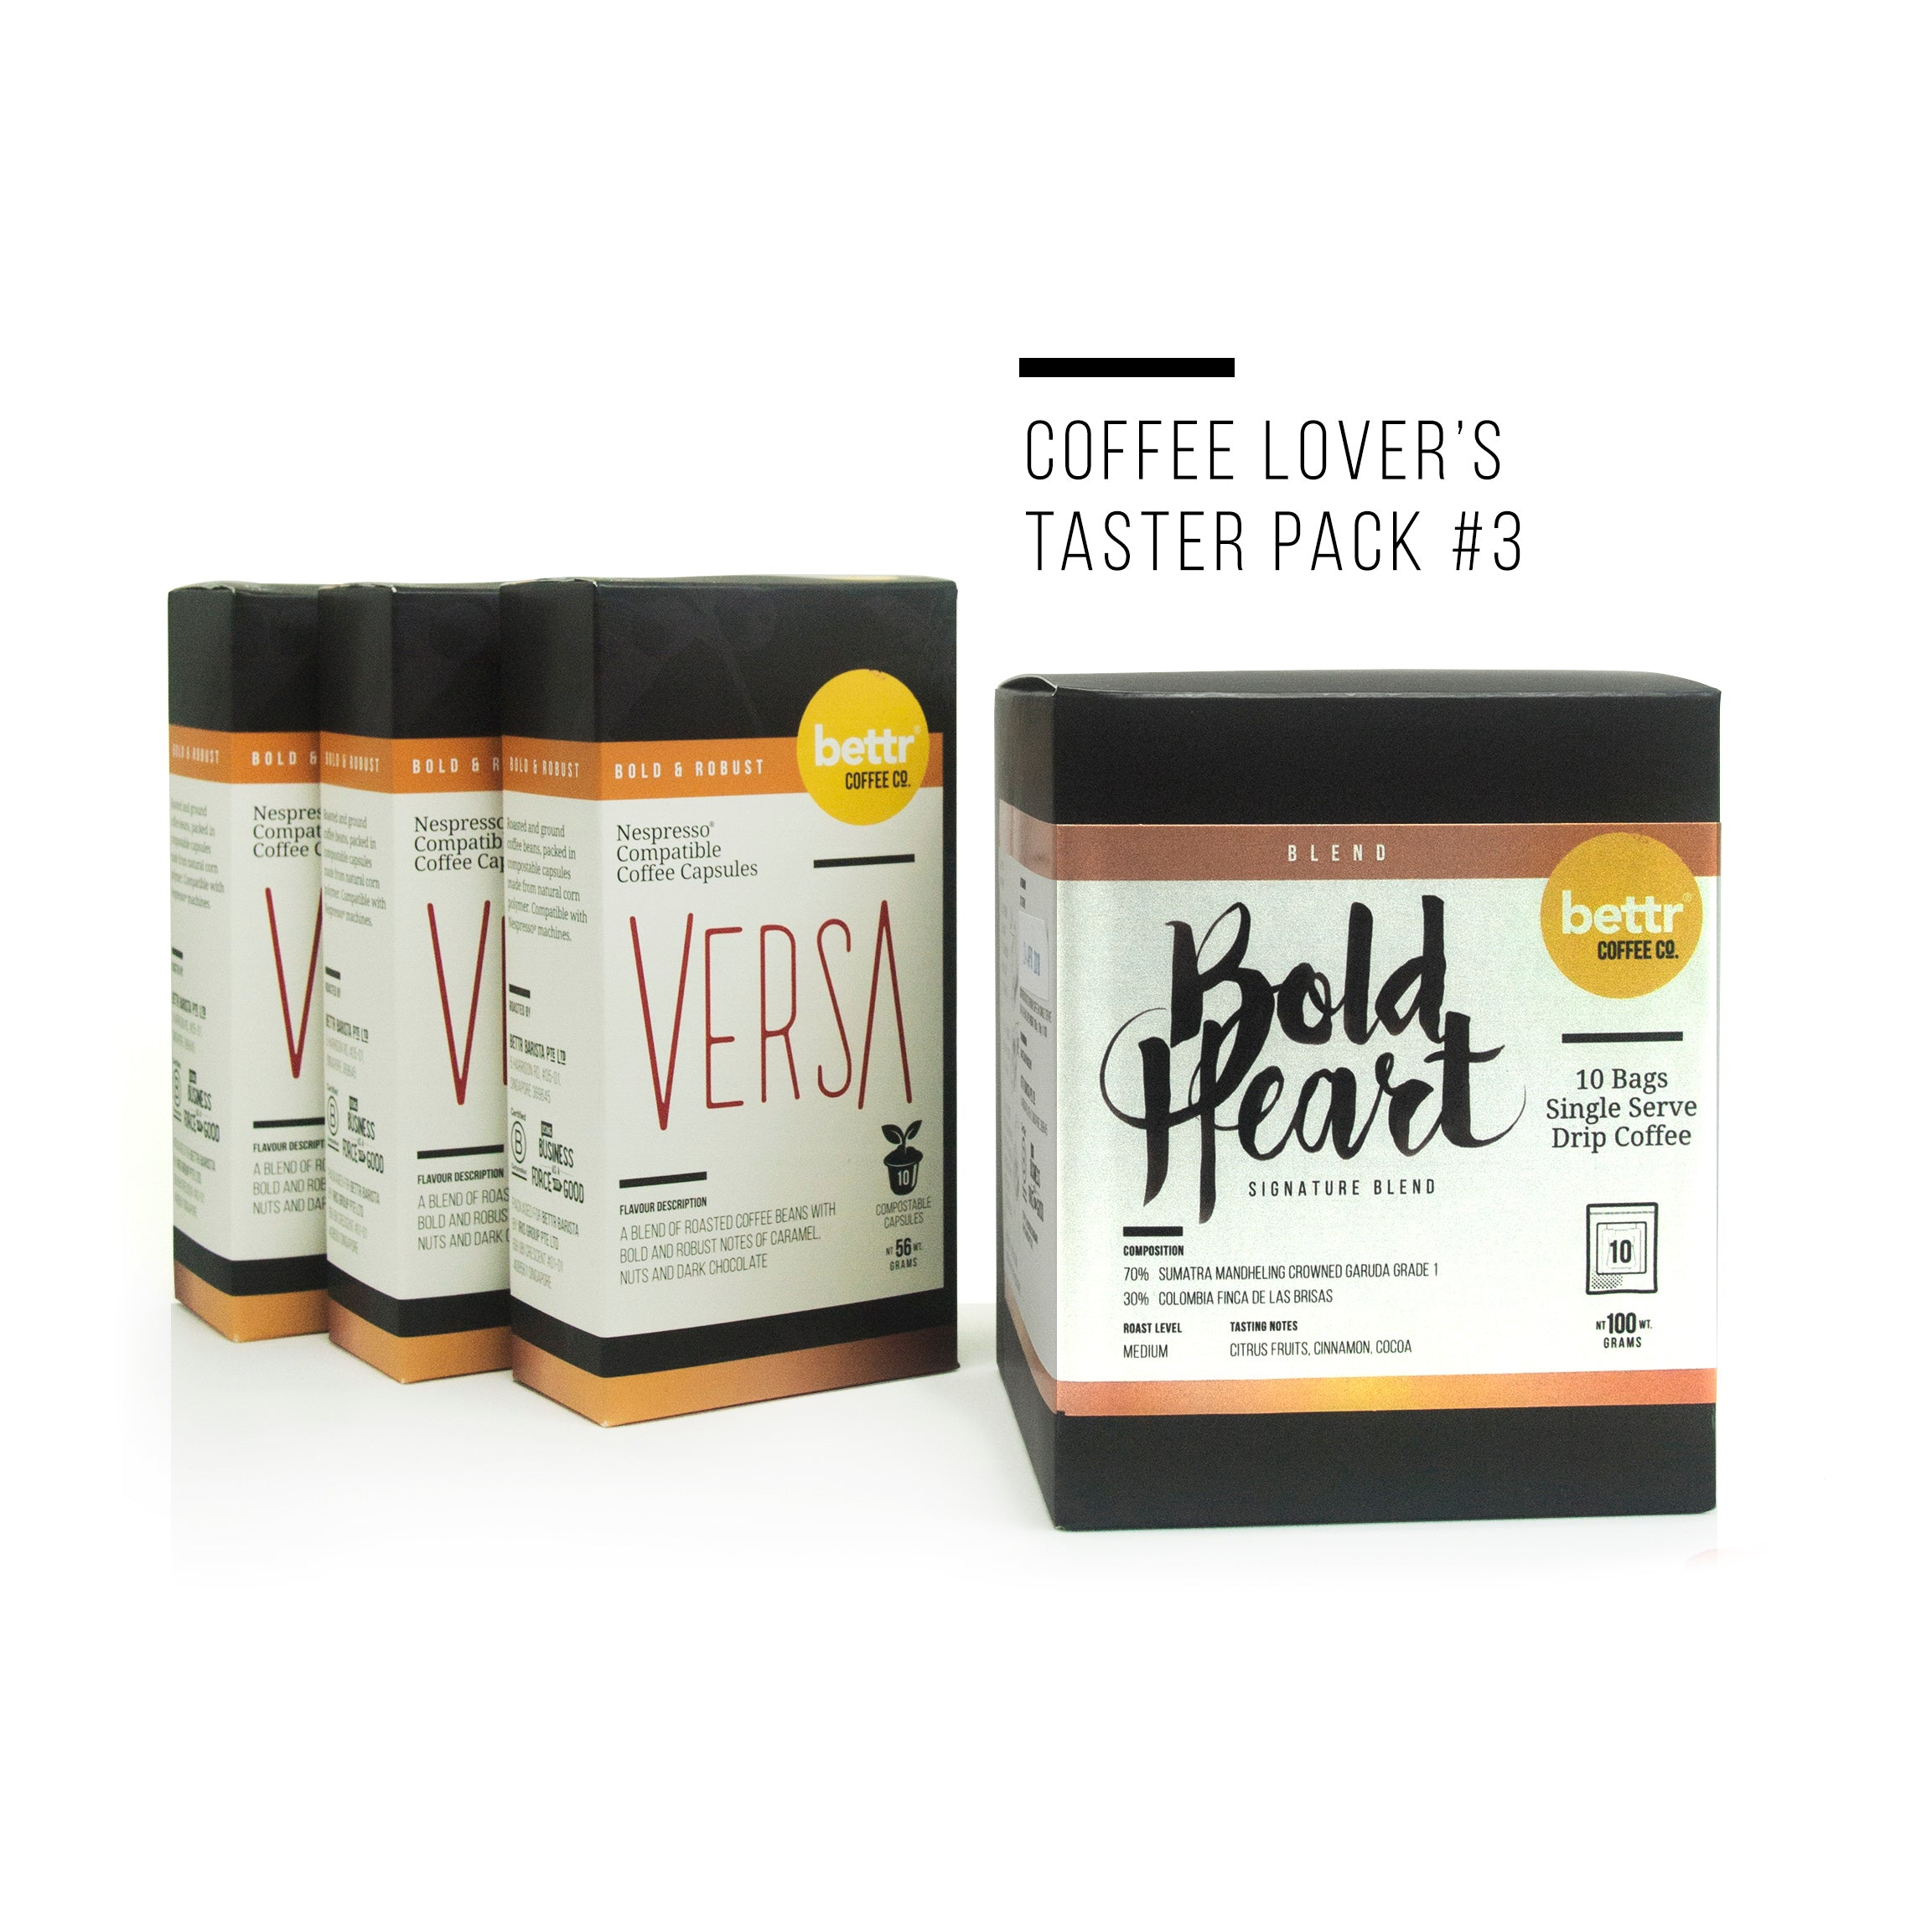 Coffee Lover's Taster Pack